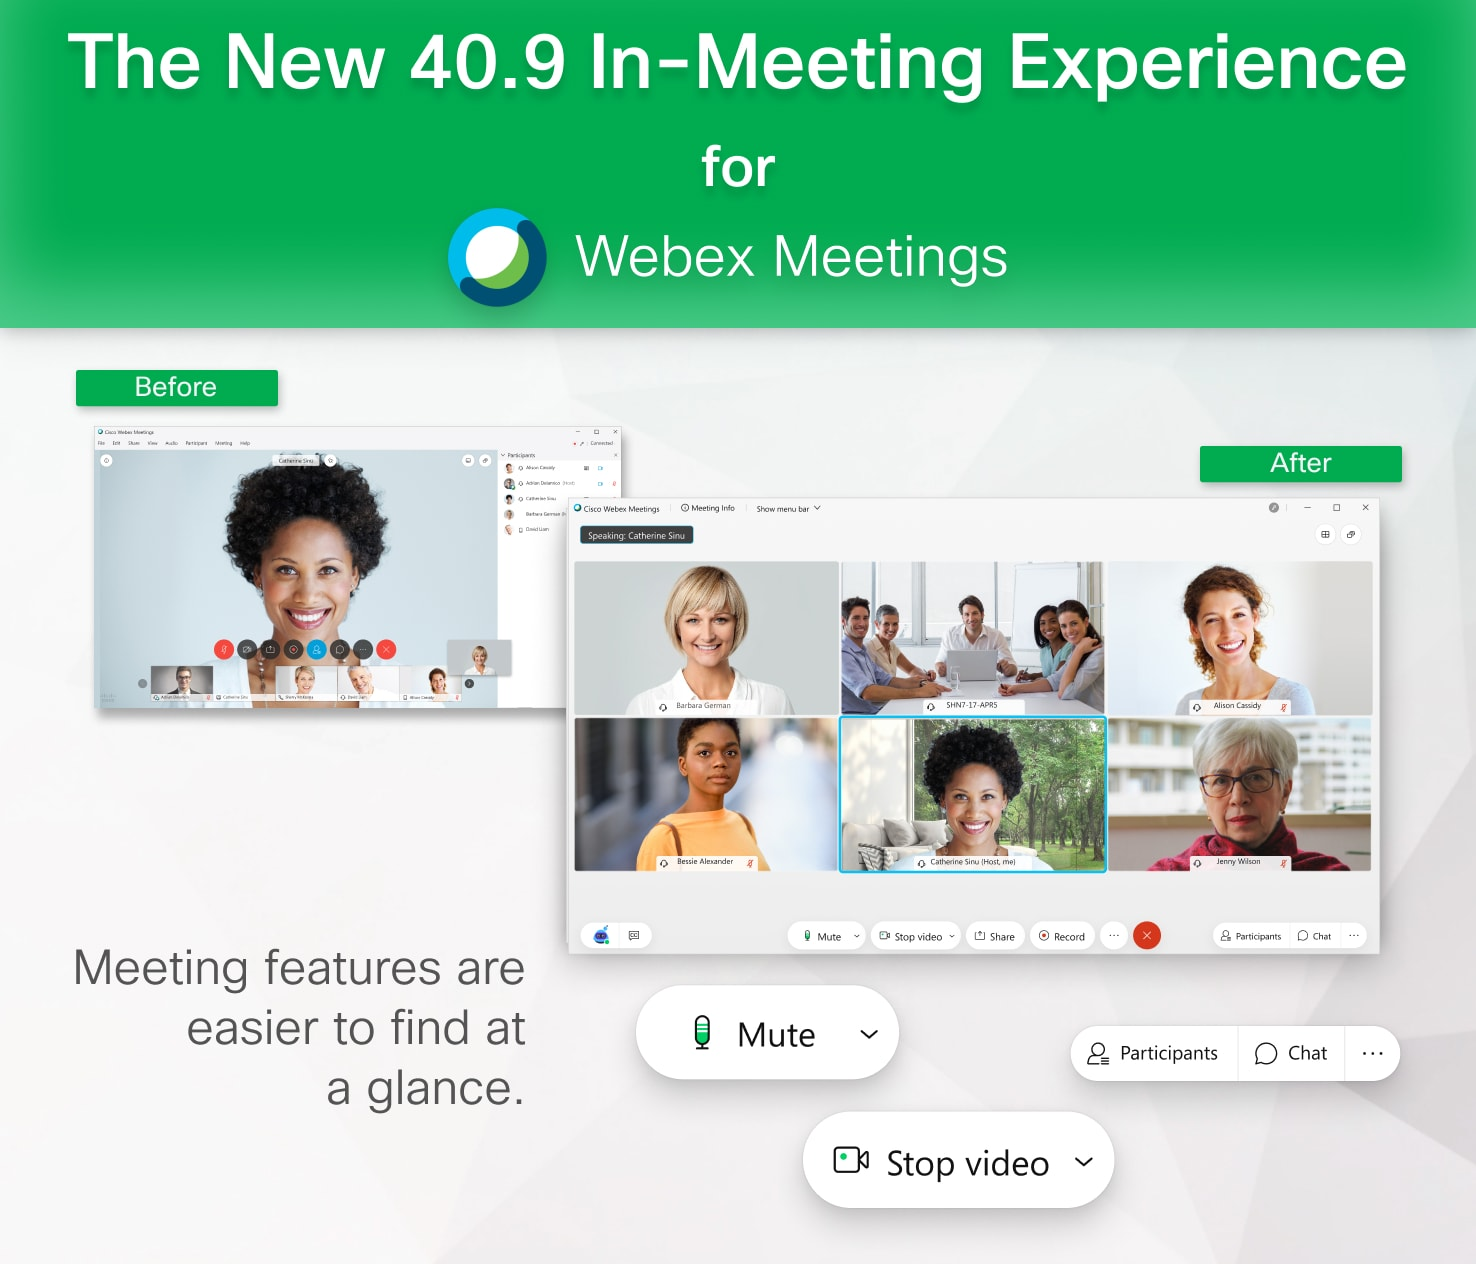 Meeting features are easier to find at a glance in 40.9.